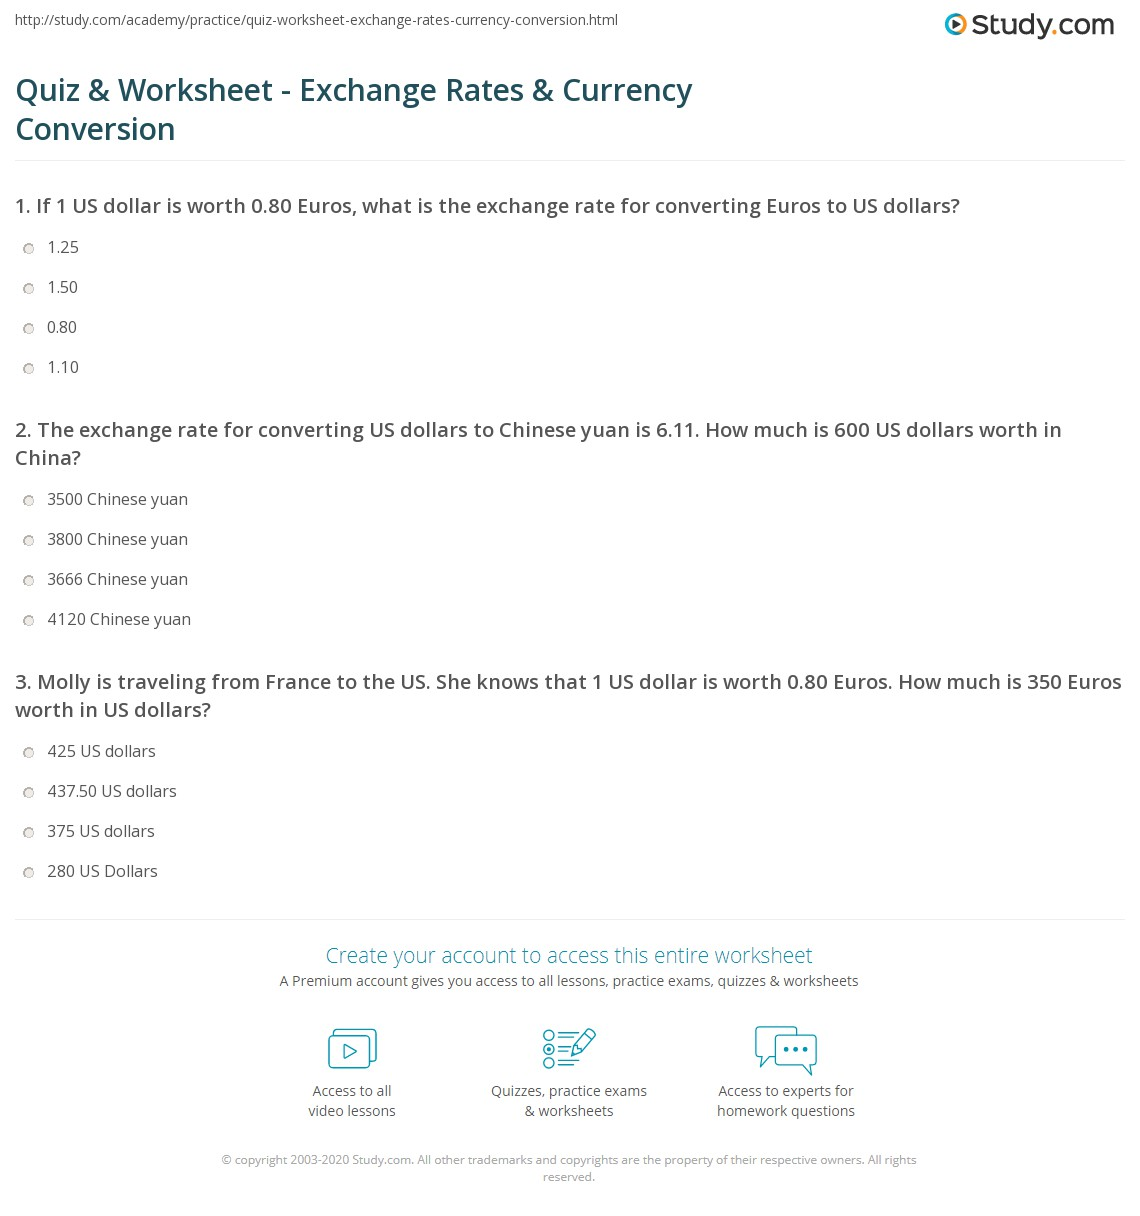 Aldiablosus  Pleasant Quiz Amp Worksheet  Exchange Rates Amp Currency Conversion  Studycom With Engaging Print Exchange Rates Amp Currency Conversion Worksheet With Divine Printable Worksheets On Prepositions Also Free Printable Grammar Worksheets For Grade  In Addition Worksheets On Motion And Year  Handwriting Worksheets As Well As Tables Practice Worksheets Additionally English Grammar Free Worksheets From Studycom With Aldiablosus  Engaging Quiz Amp Worksheet  Exchange Rates Amp Currency Conversion  Studycom With Divine Print Exchange Rates Amp Currency Conversion Worksheet And Pleasant Printable Worksheets On Prepositions Also Free Printable Grammar Worksheets For Grade  In Addition Worksheets On Motion From Studycom